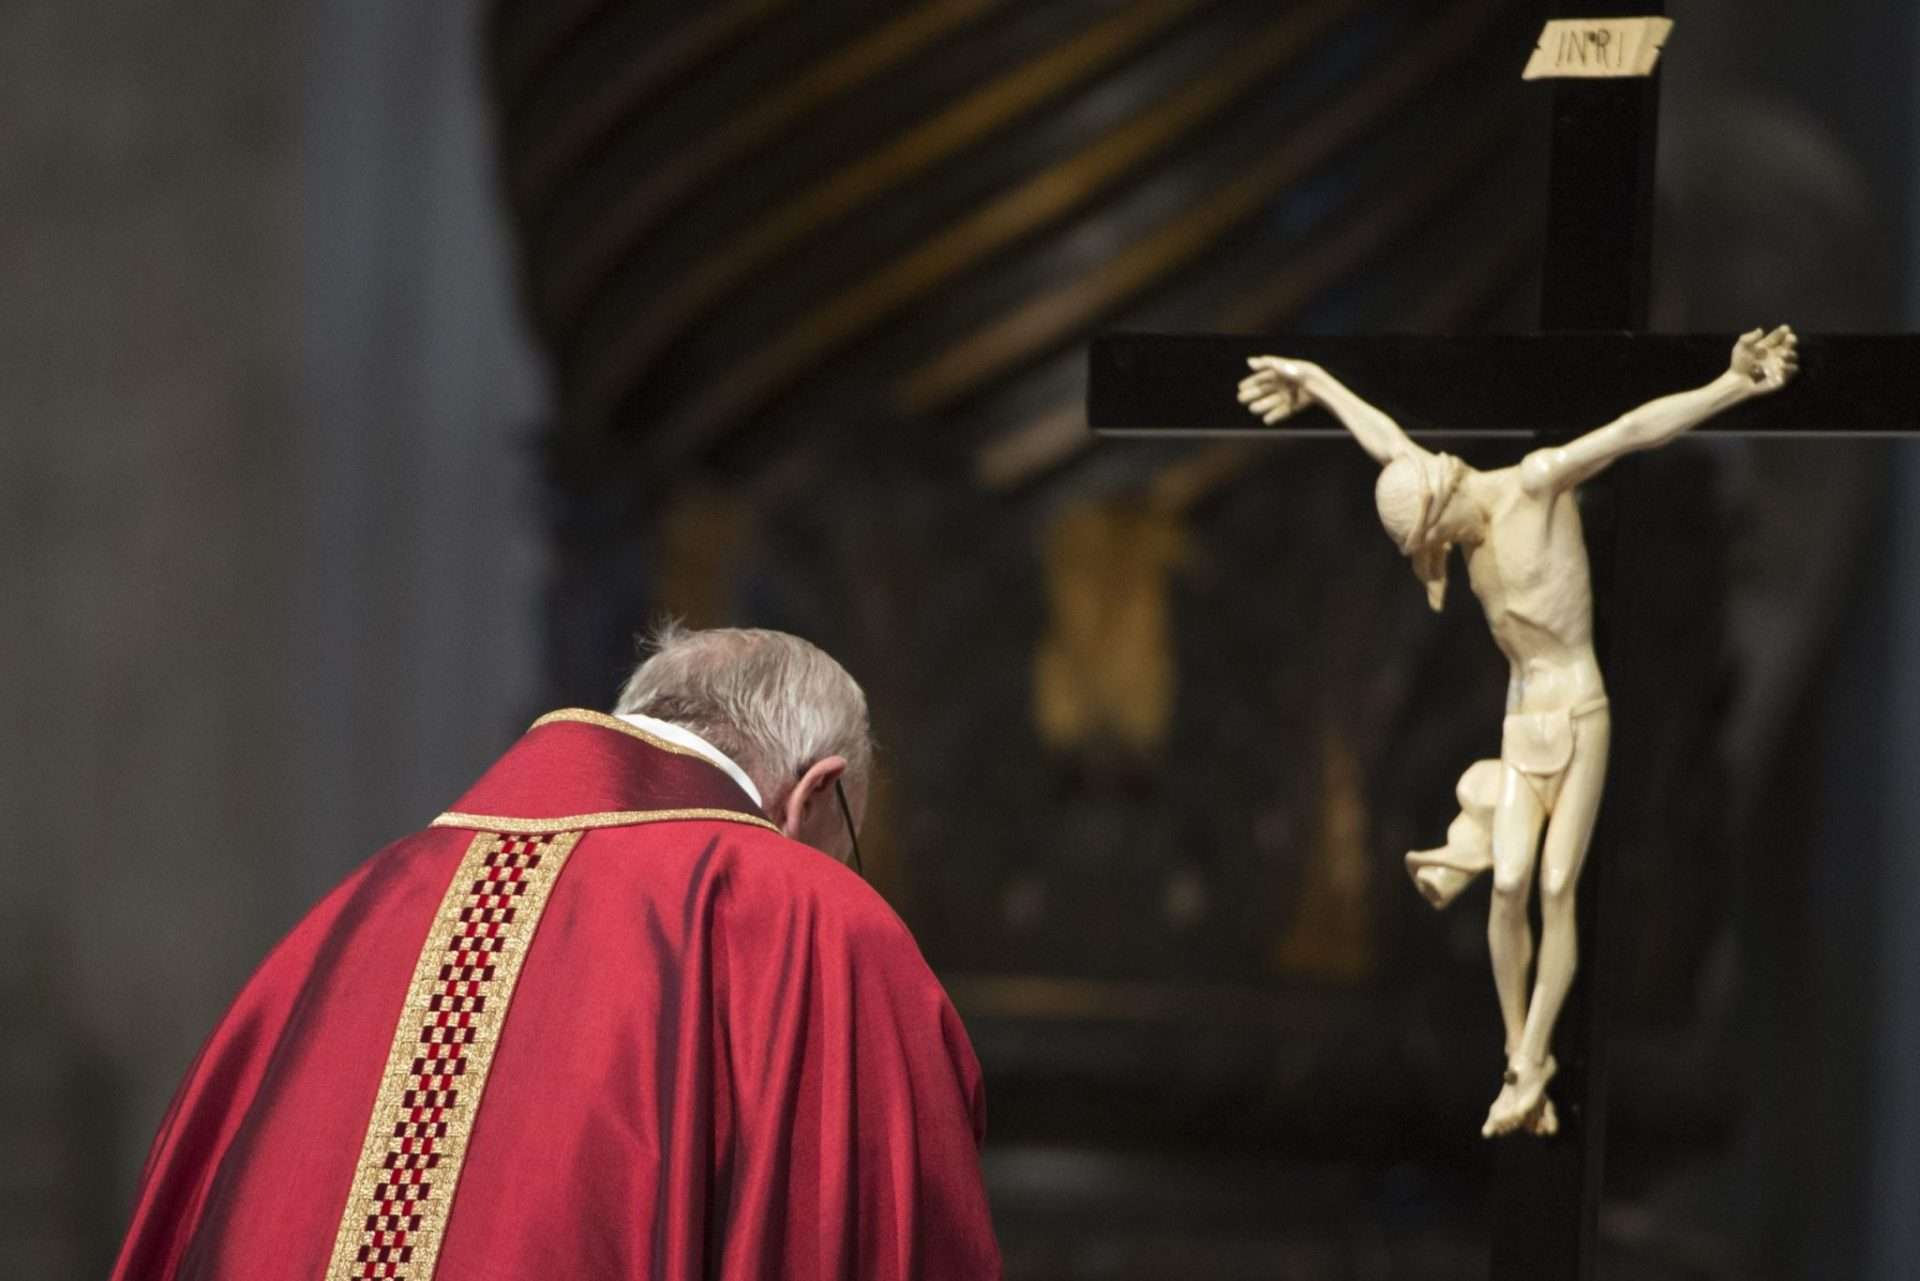 Why do Catholics bow at the Name of Jesus?